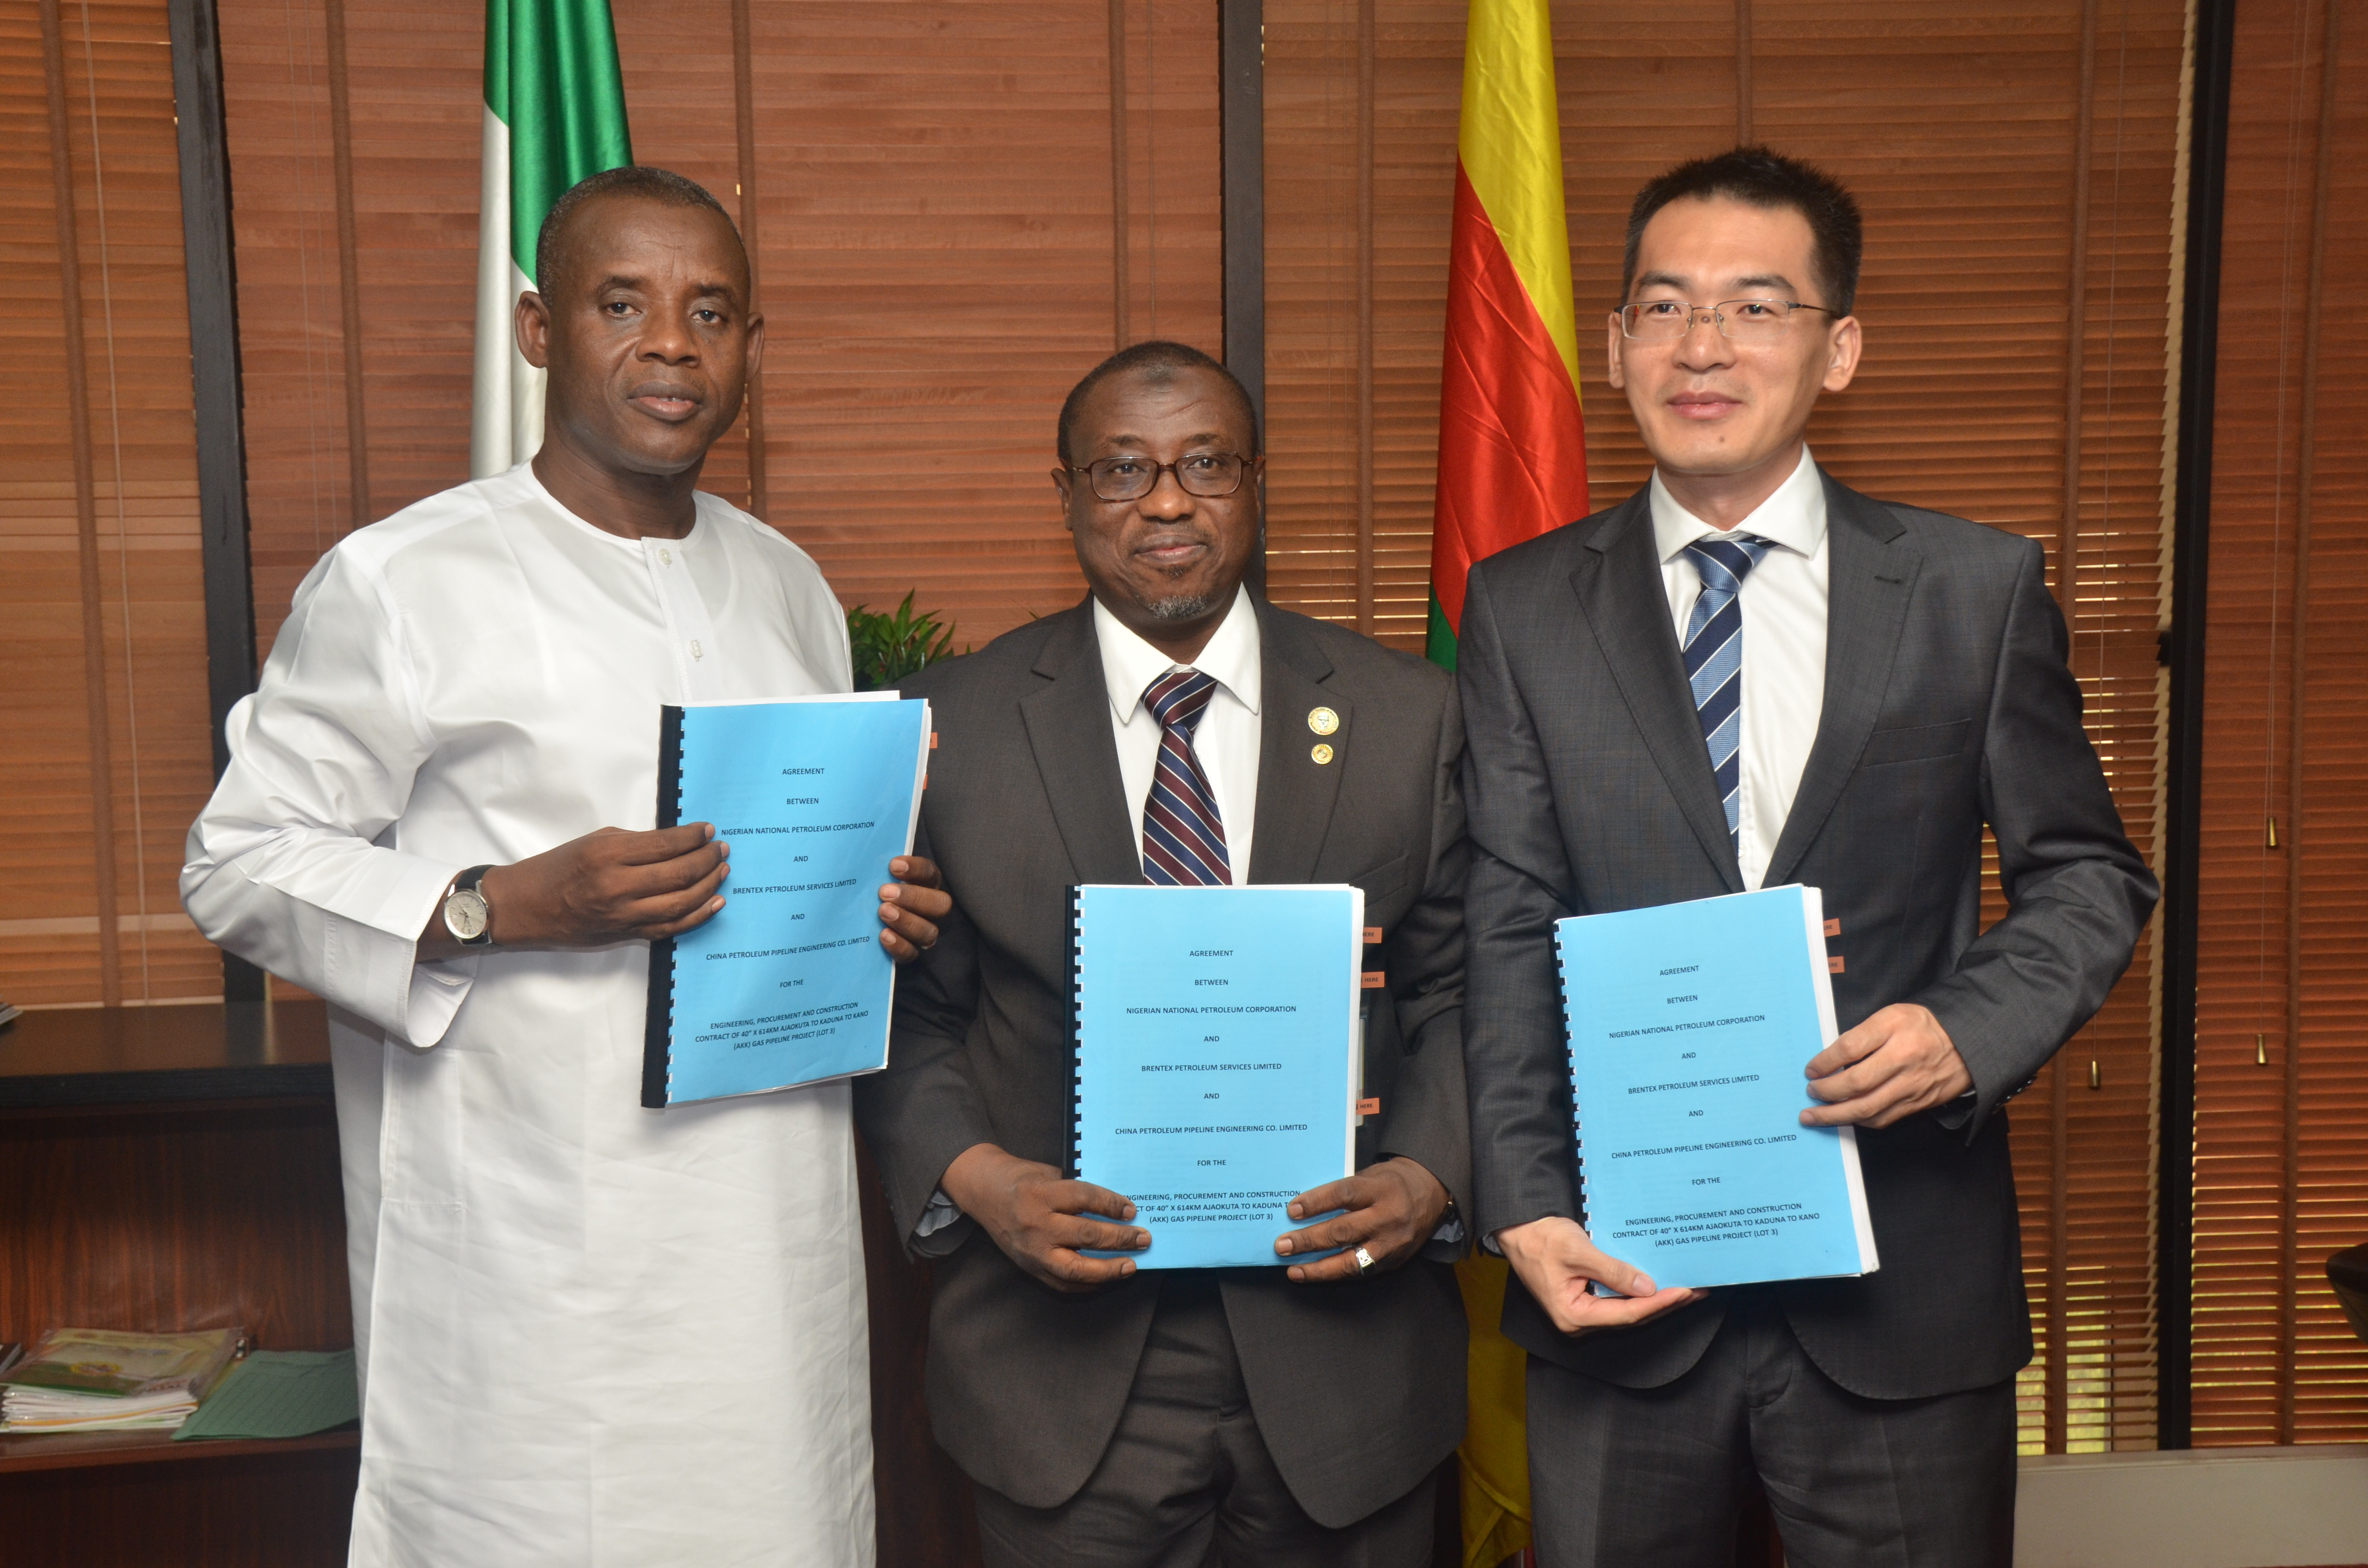 NNPC, Chinese Consortium Signs Contract Agreements for 614km AKK Project